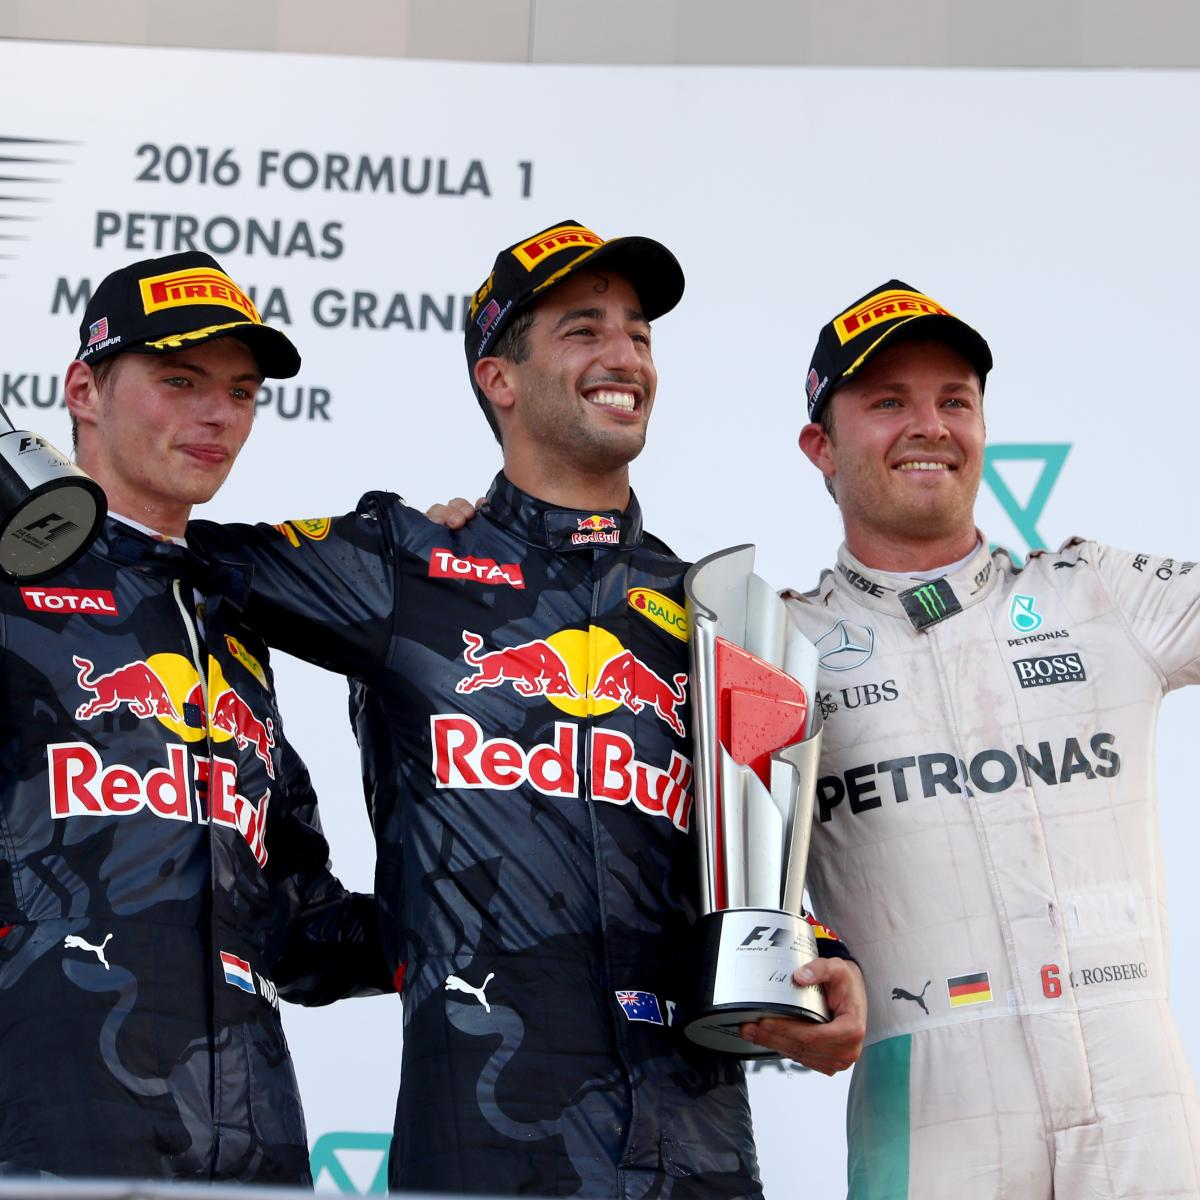 Malaysian Grand Prix 2016: Winners And Losers From Sepang